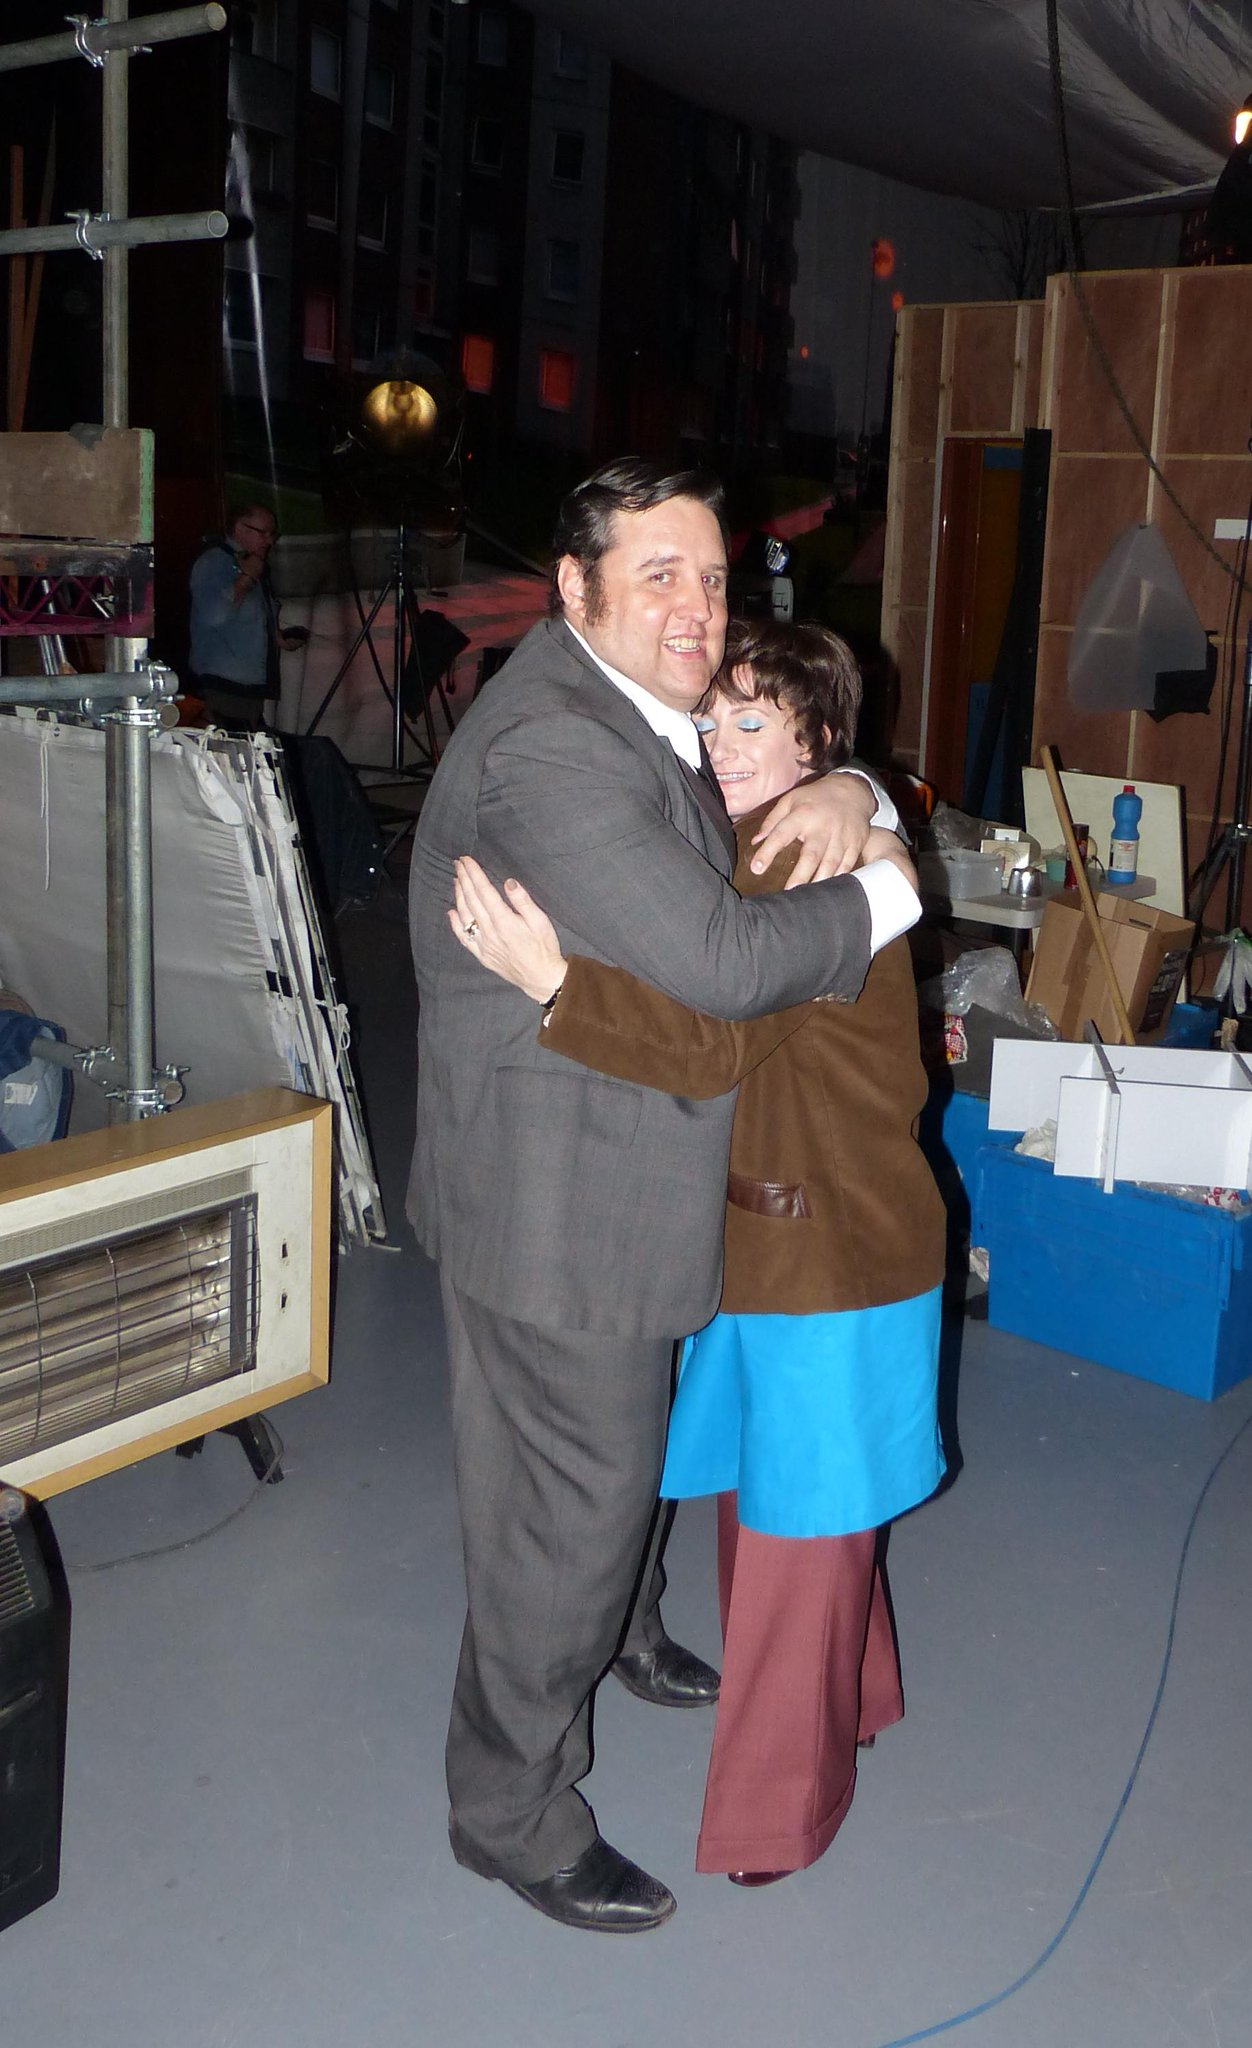 Peter with @Lucyspeed slow dancing between takes on #CradleToGrave. BBC2 at 9. A truly rocking episode. http://t.co/aUsLyWBdih